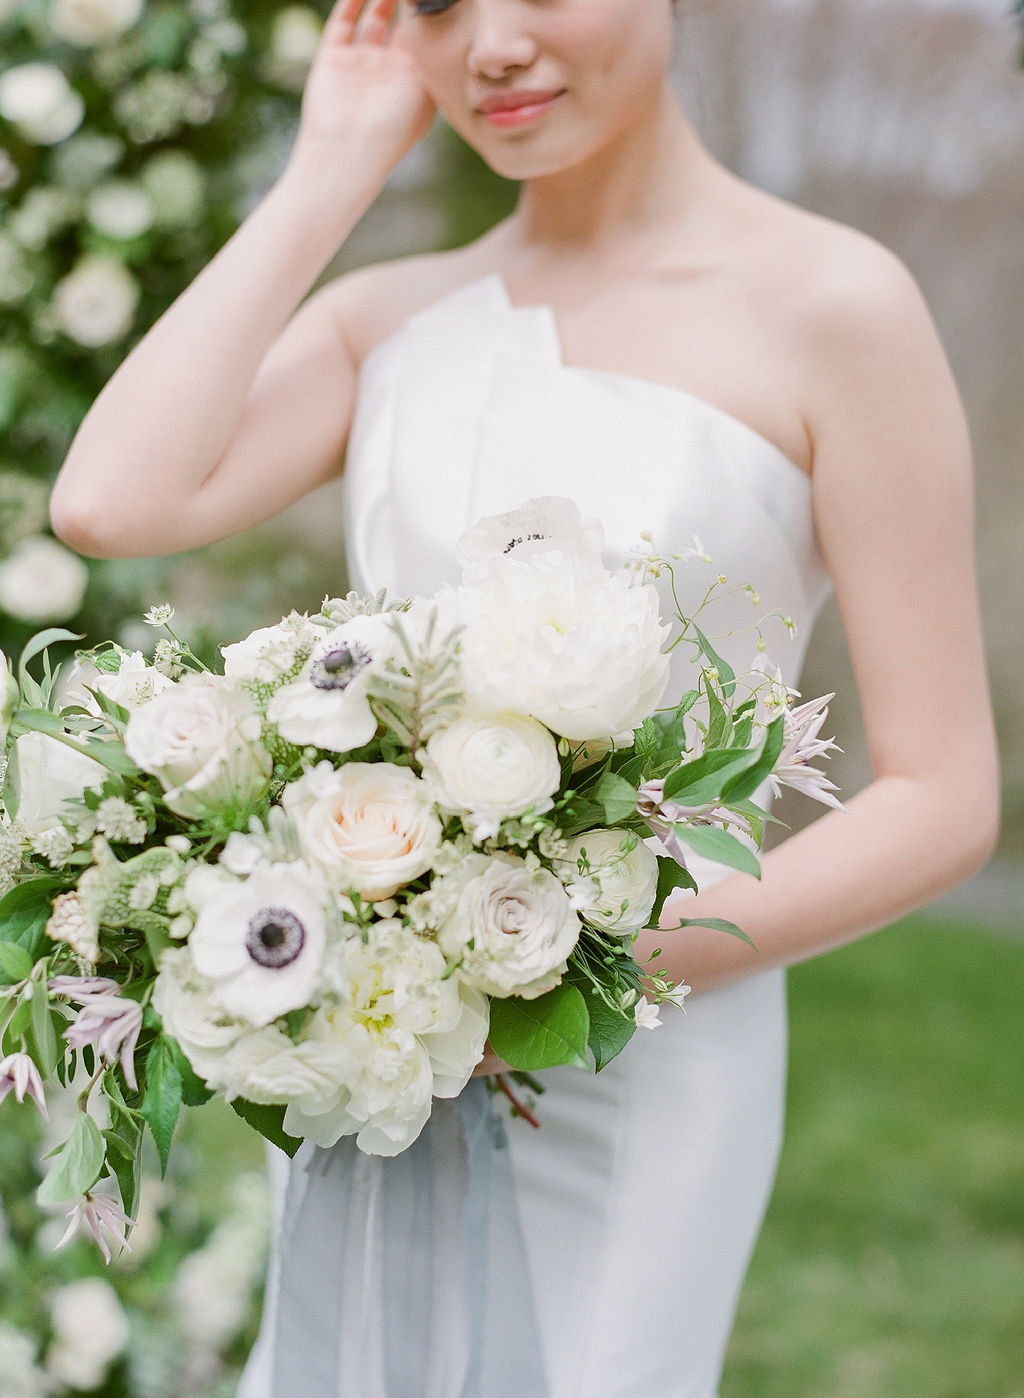 Jacqueline Anne Photography, The One Day Workshop, Halifax Wedding Photographer, Koko Mod Florals